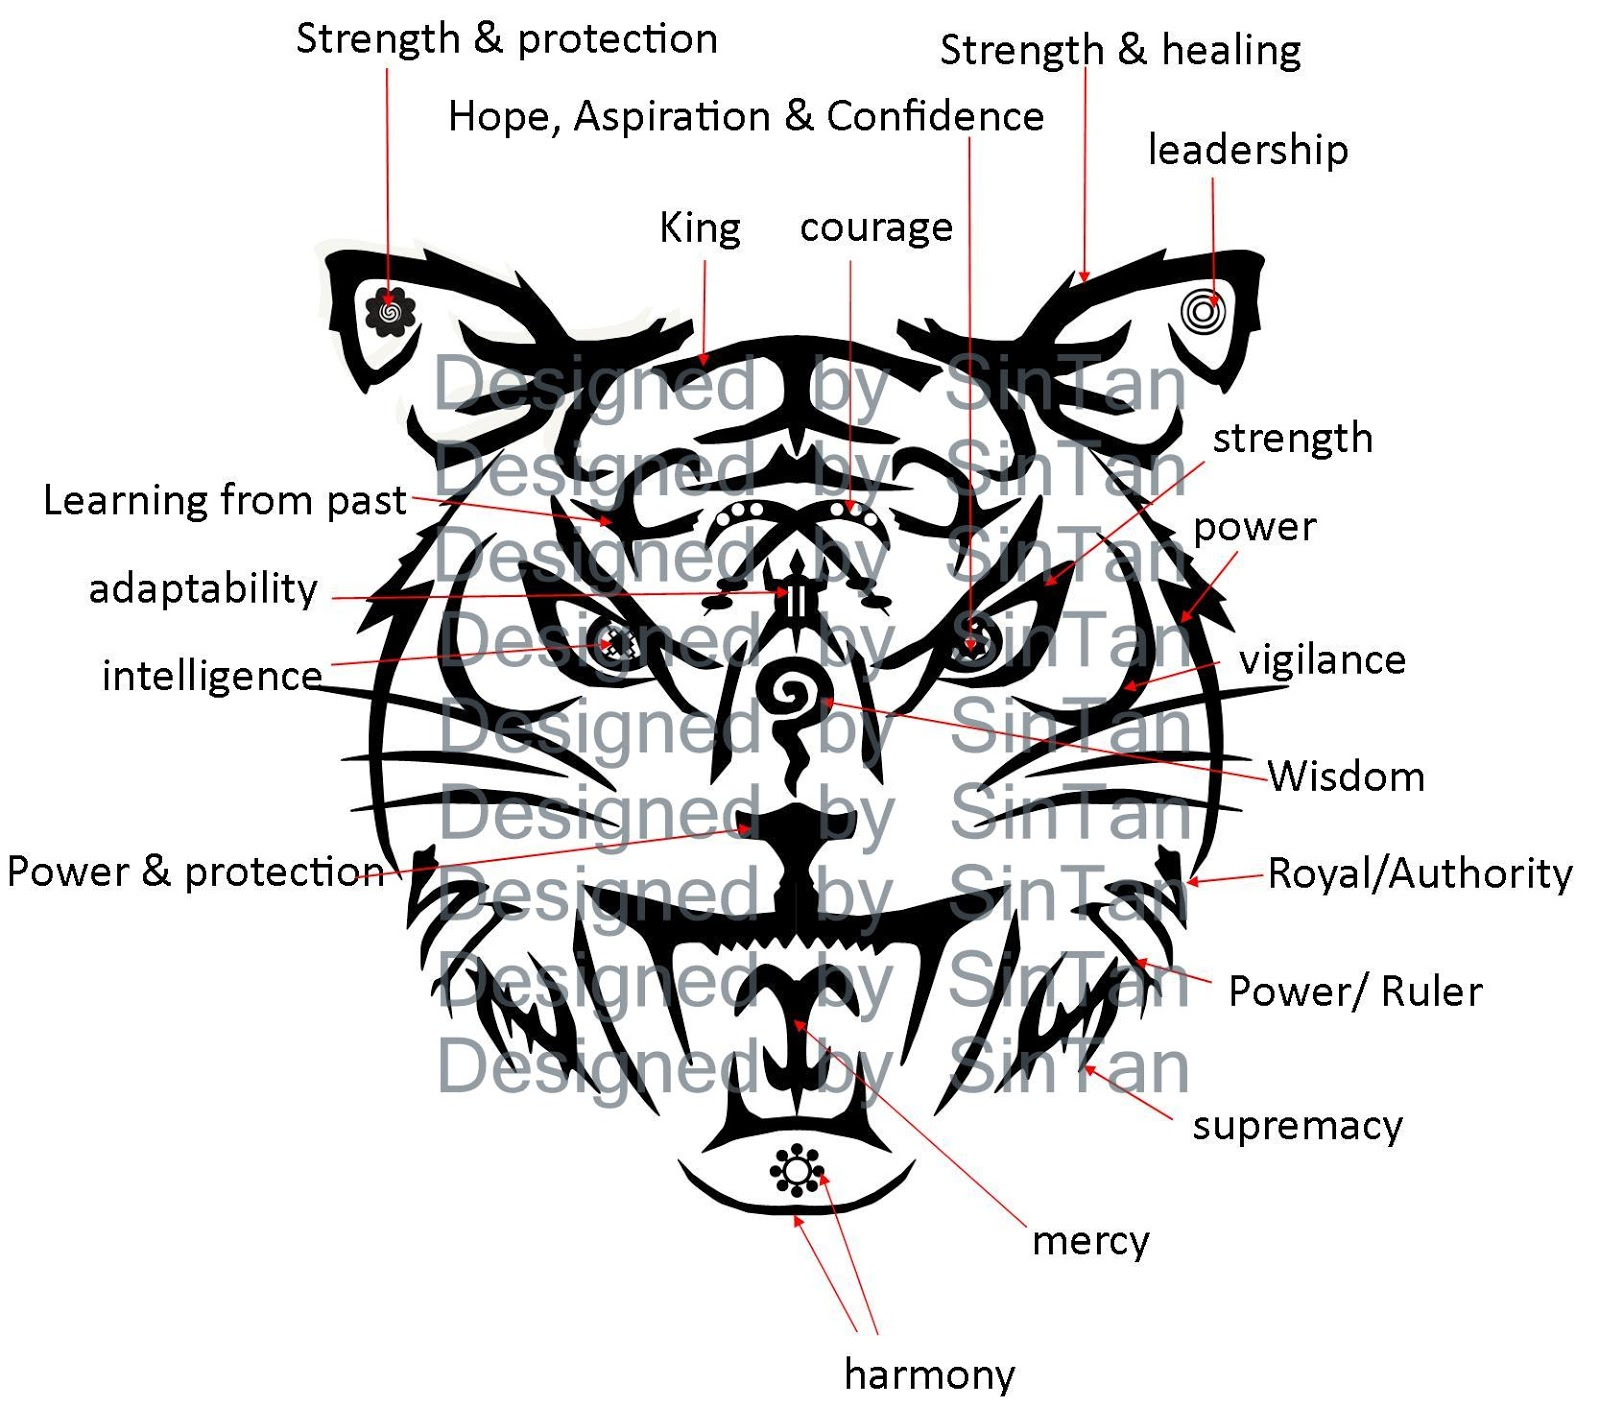 Design play design of a tiger tattoo problem of the future today doing it on 27 7 15 hopefully it will turned out to be nice buycottarizona